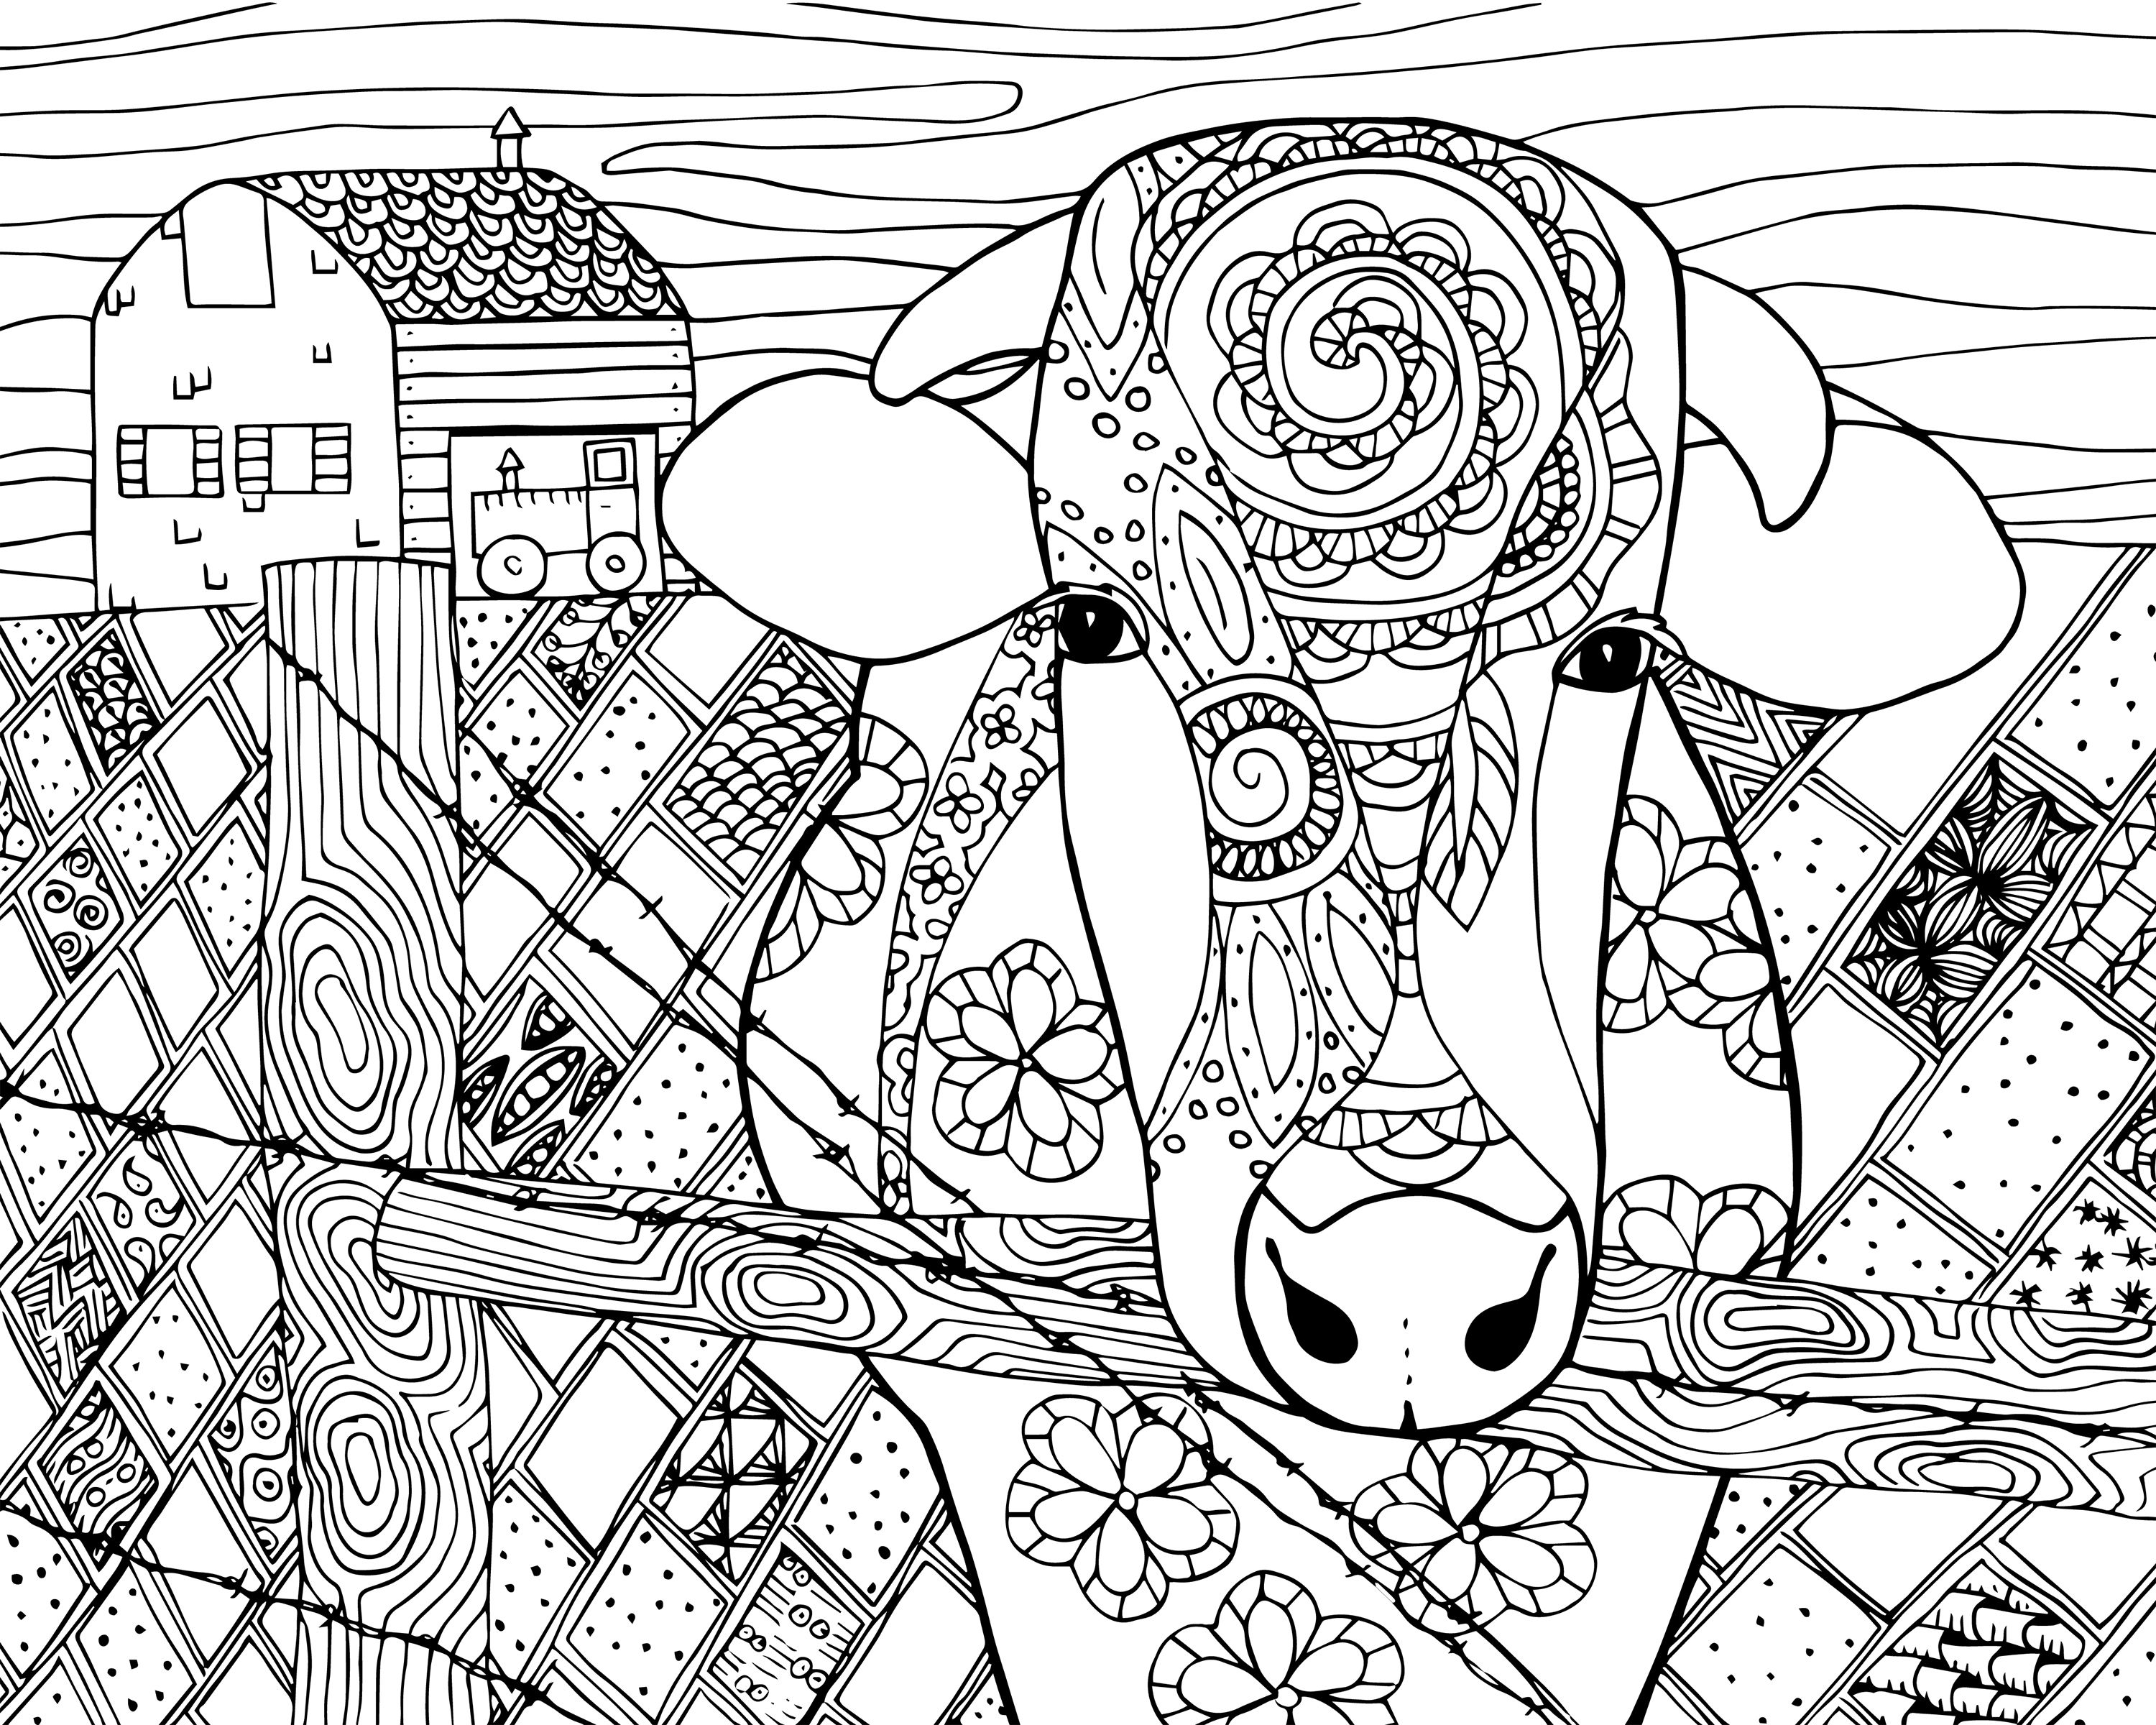 Coloring Pages For Adults Summer at GetDrawings com | Free